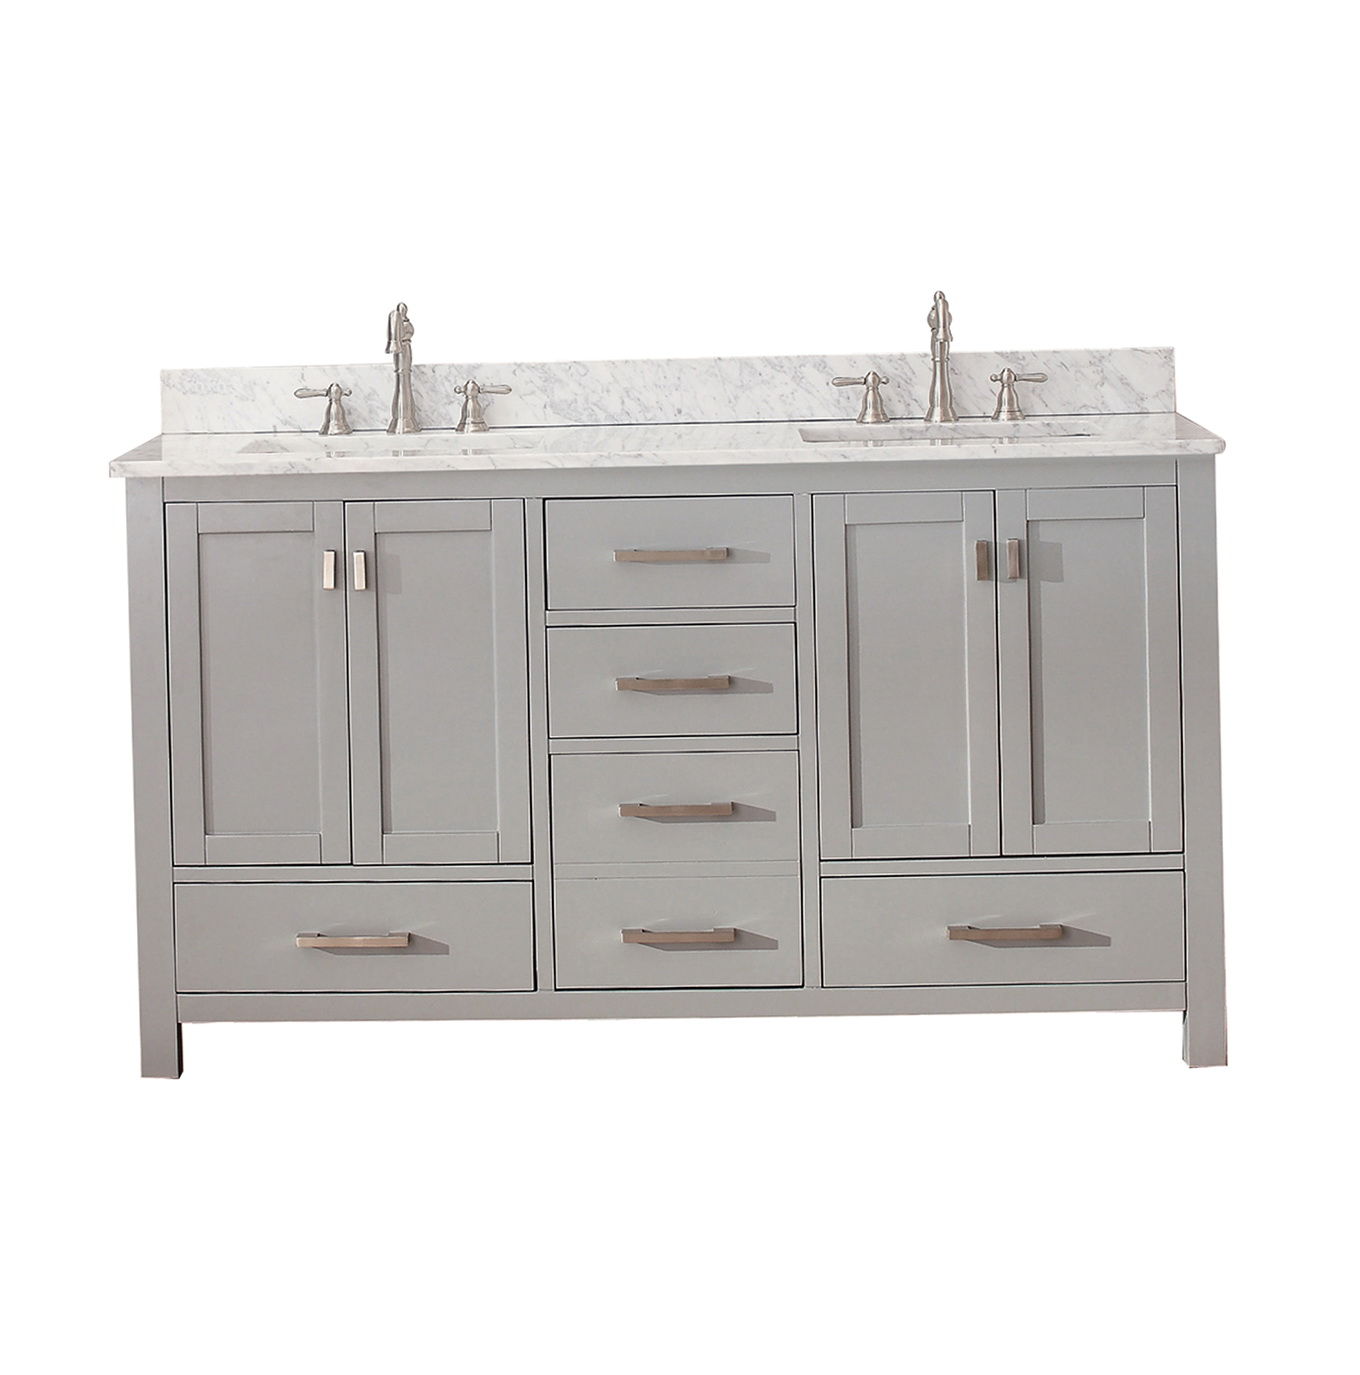 60 Vanity Double Sink Lowes Home Design Ideas